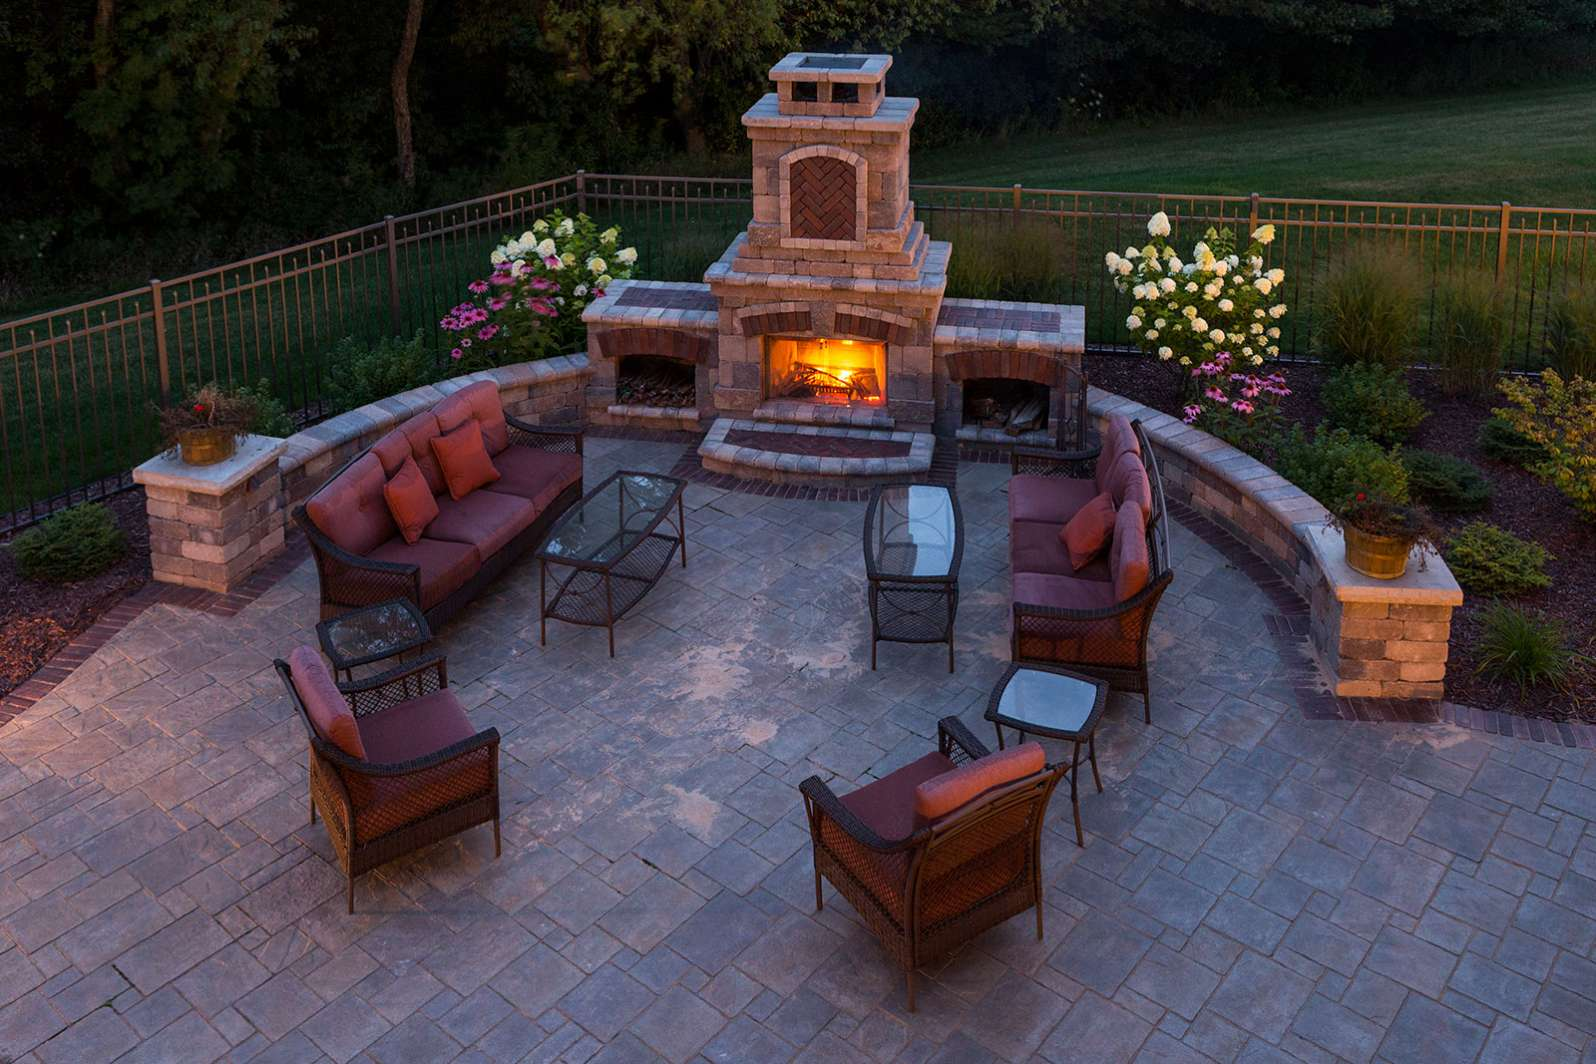 & Landscaping Photo Gallery in Appleton WI azcodes.com